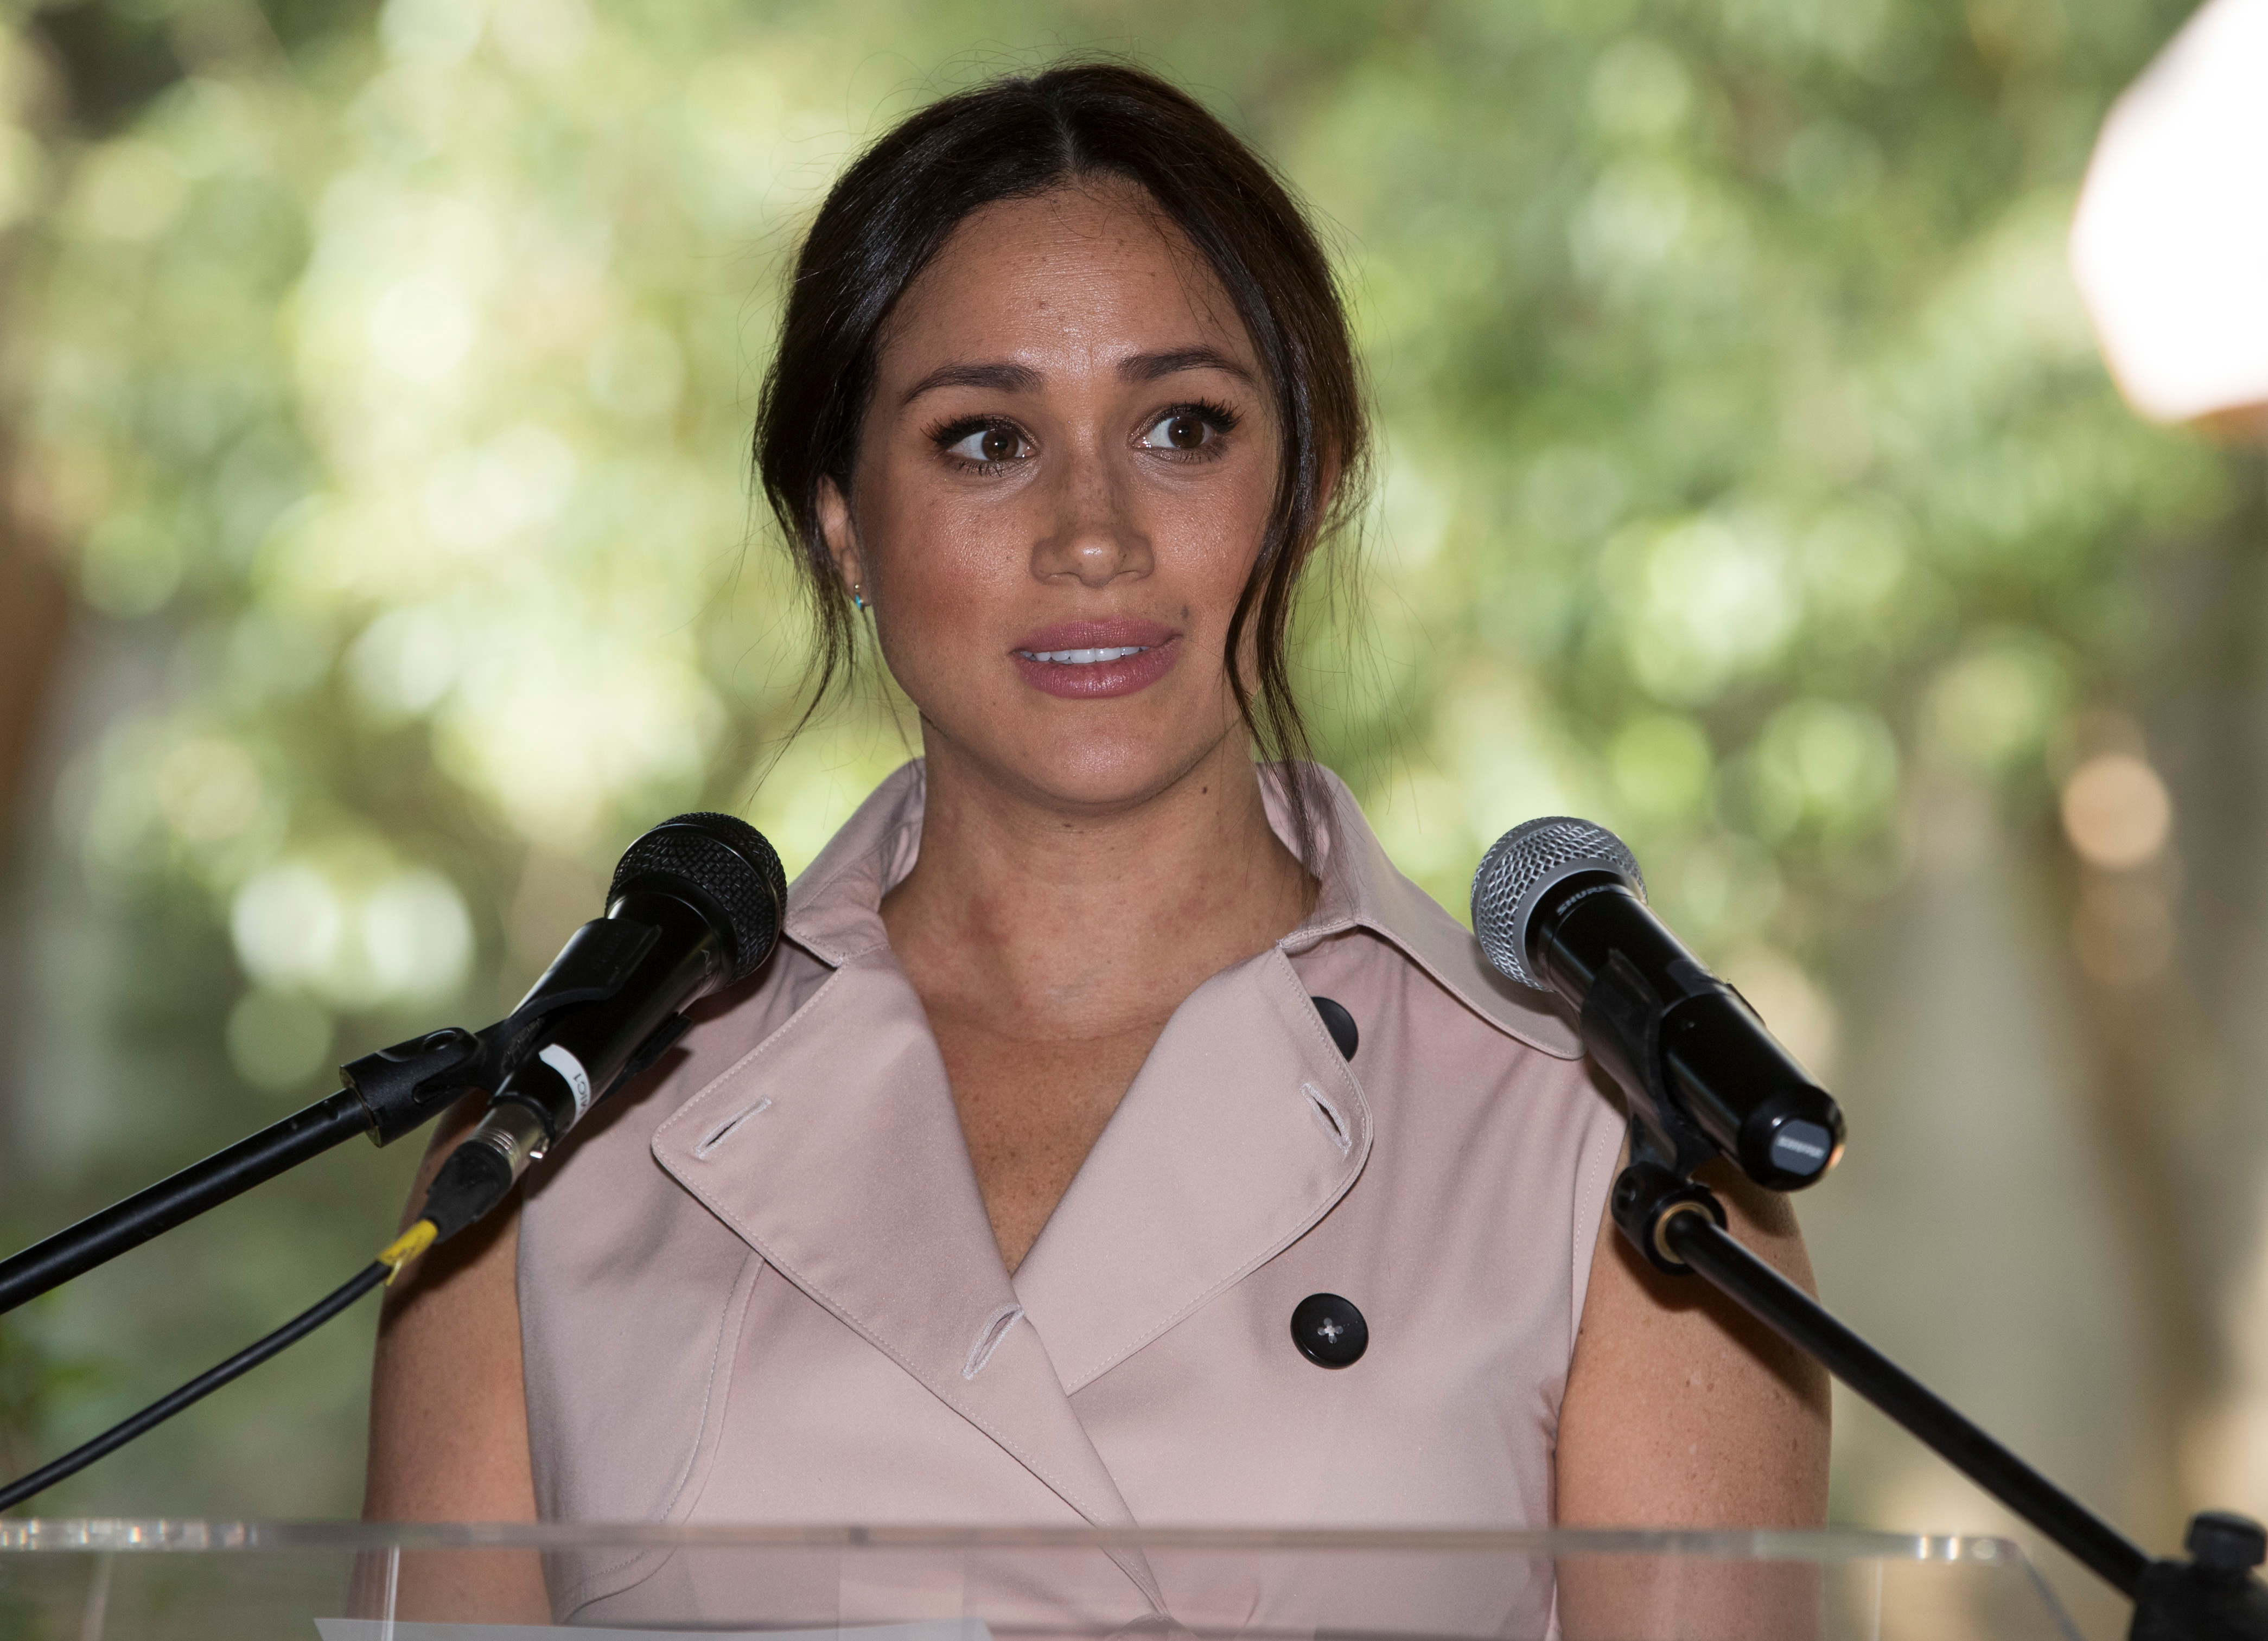 Meghan Duchess of Sussex at a business reception at the British High Commissioner's Residence in Johannesburg, South AfricaPrince Harry and Meghan Duchess of Sussex visit to Africa - 02 Oct 2019